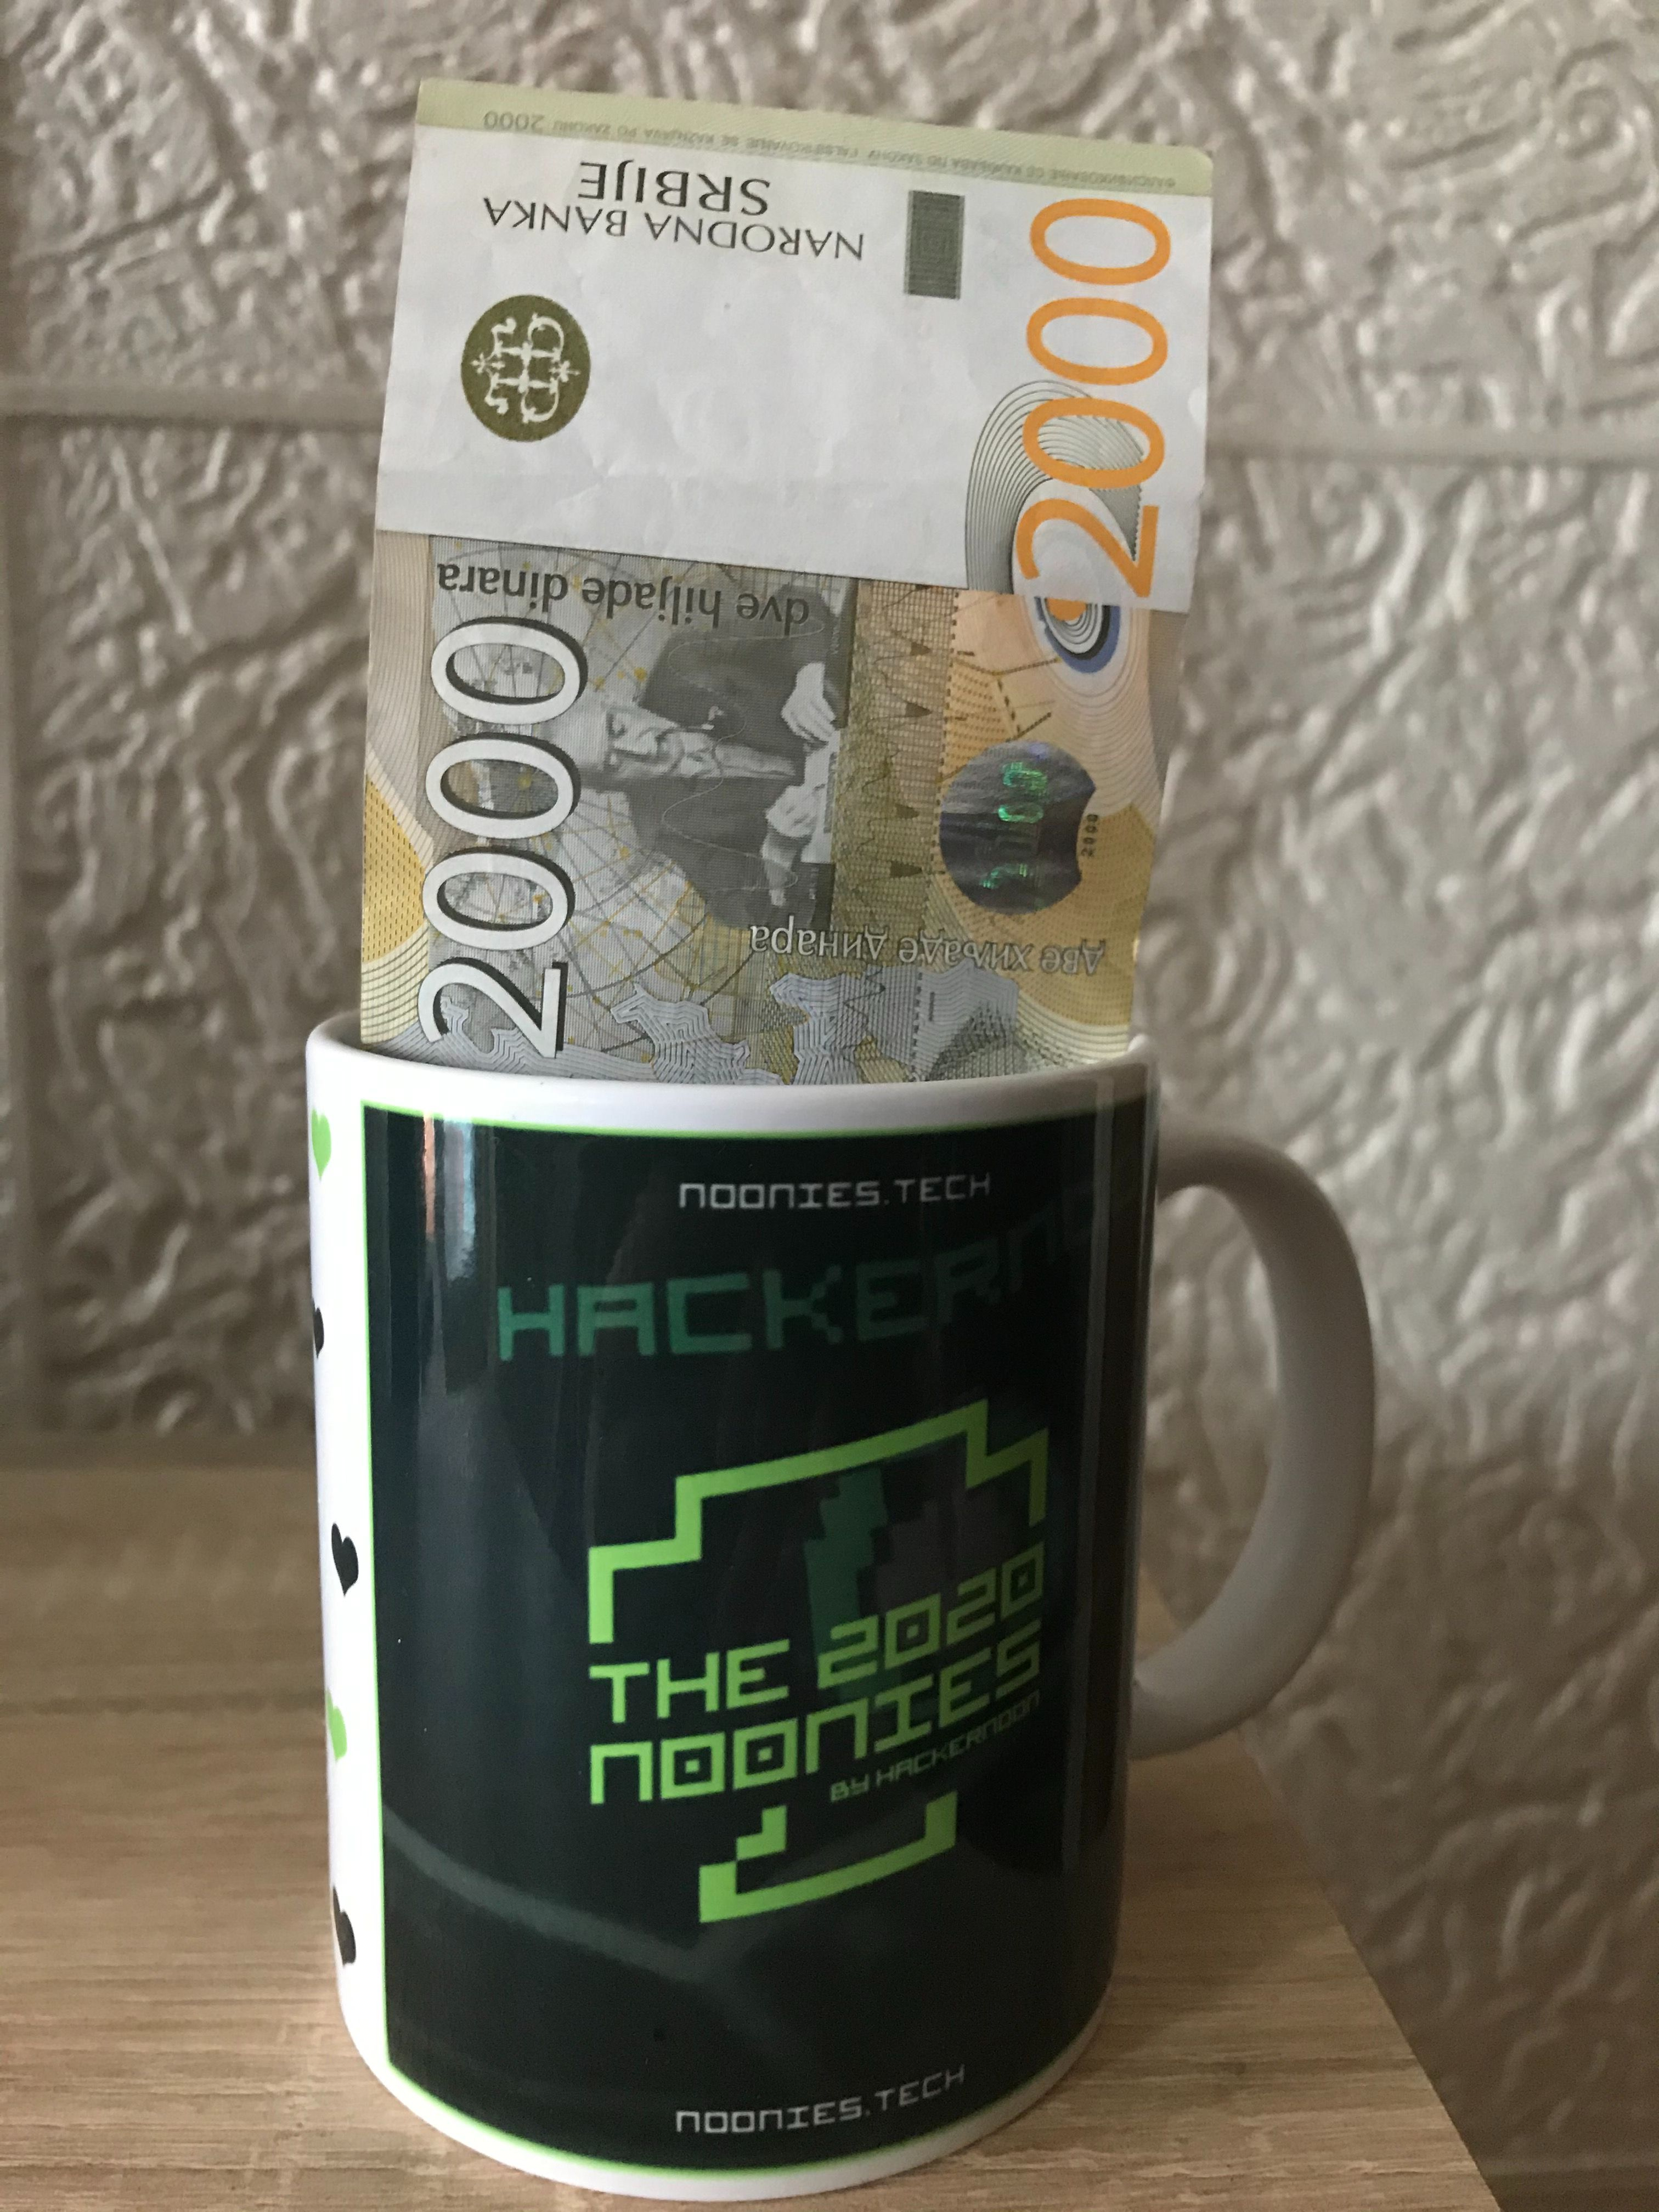 /how-can-hacker-noons-covid-20-rule-make-the-world-a-better-place-in-2021-ep1t342r feature image